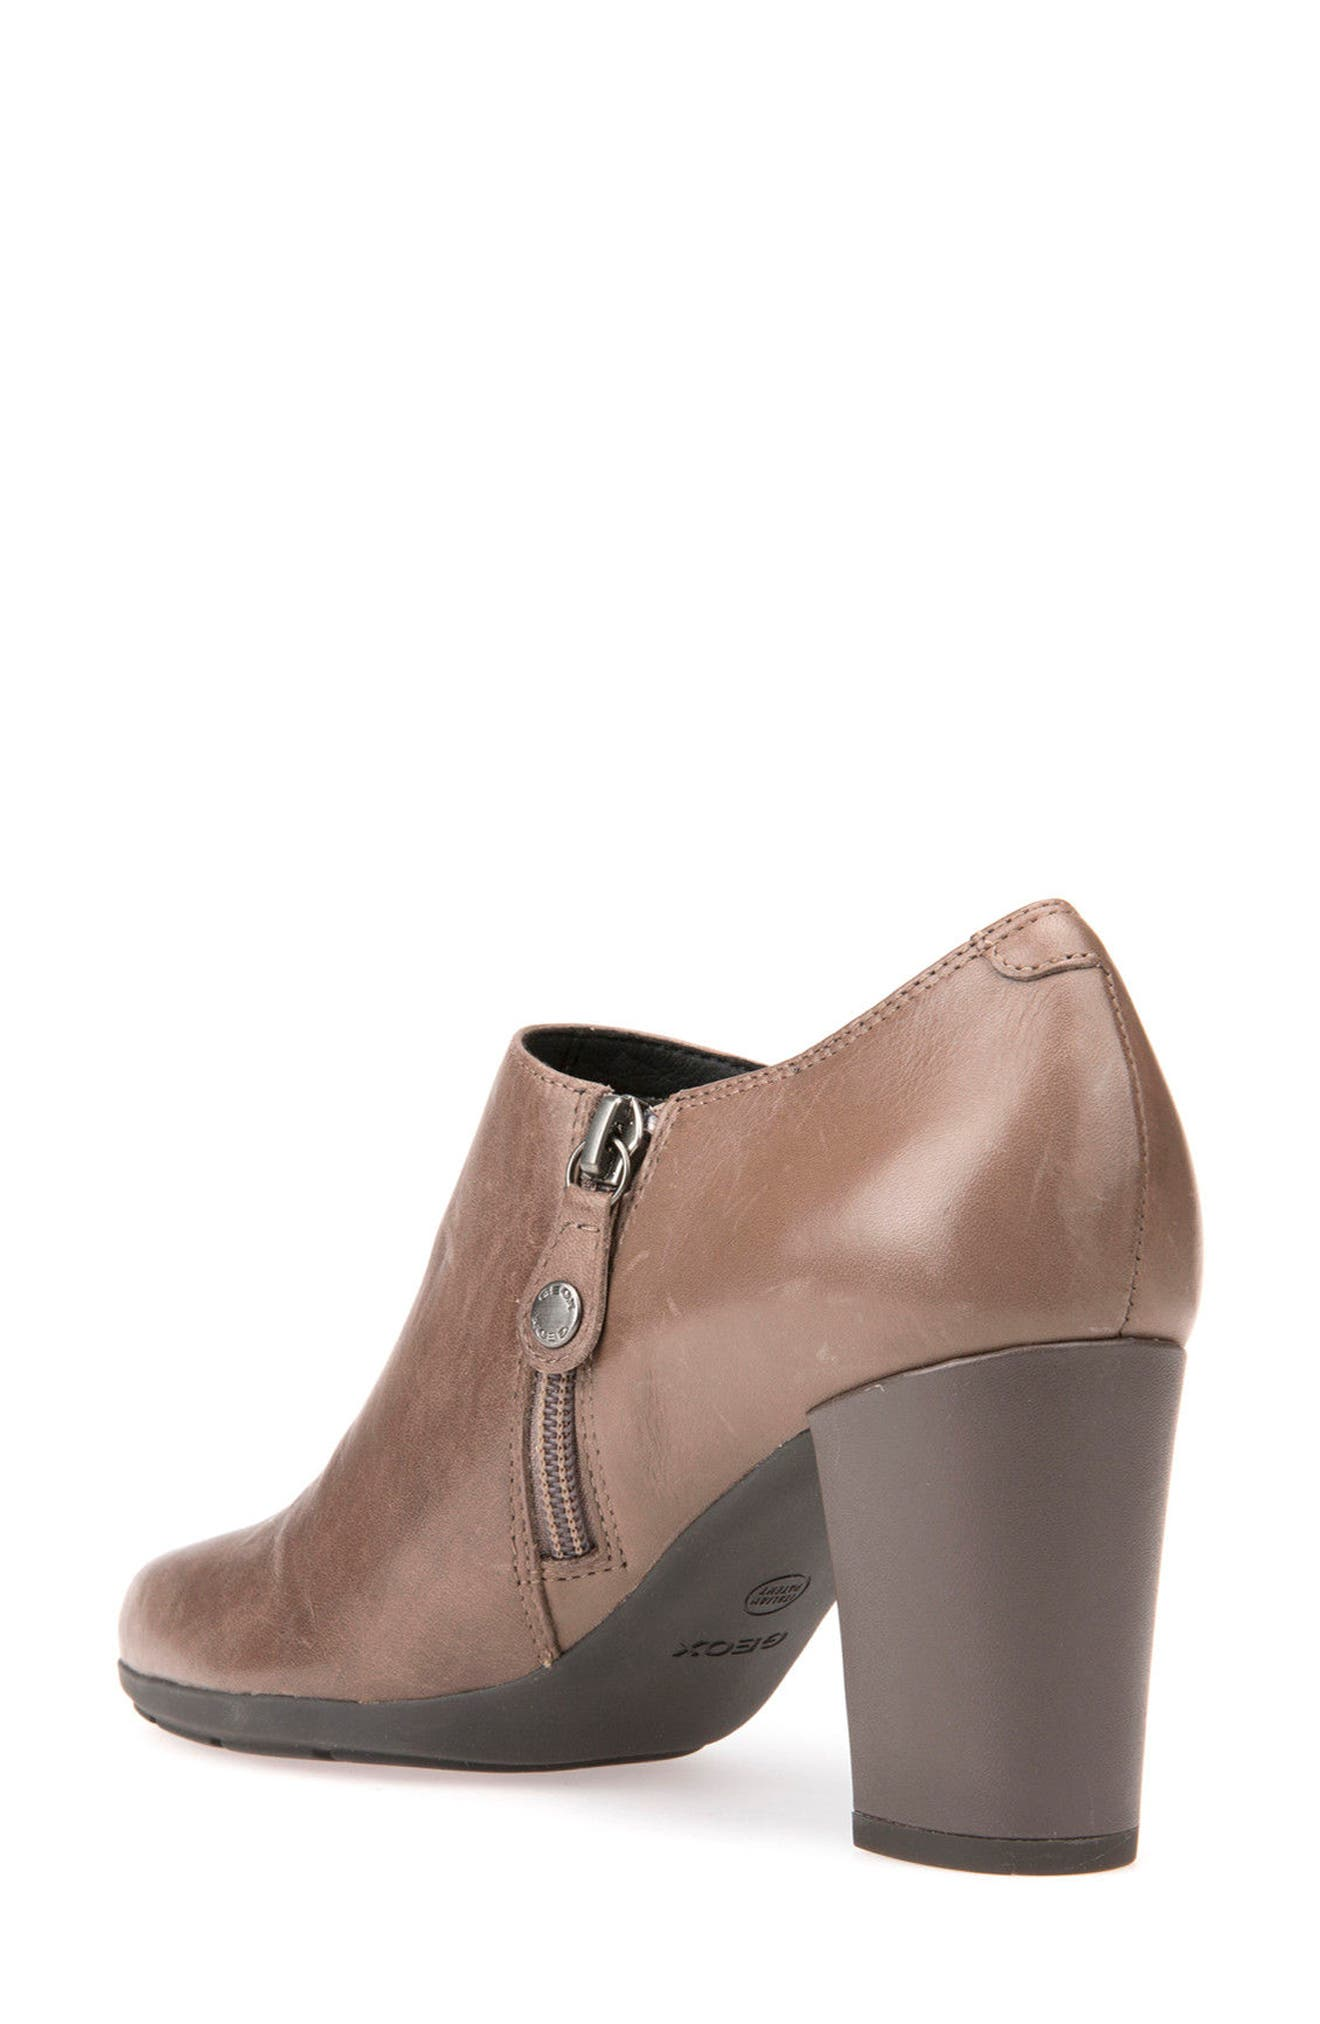 Annya Bootie,                             Alternate thumbnail 2, color,                             Taupe Leather